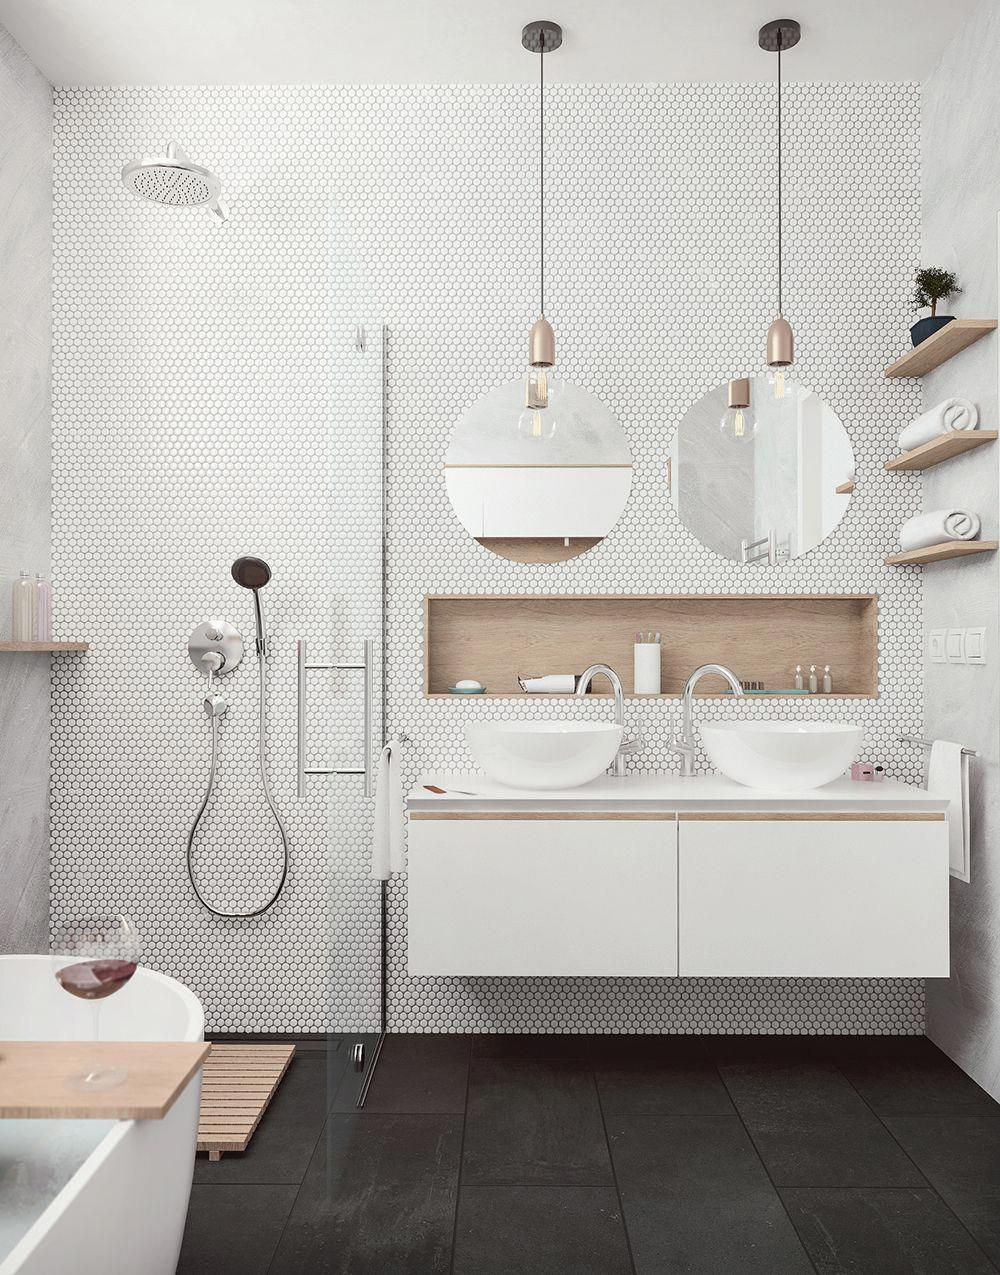 25 Tranquil Scandinavian Bathroom Decor To Get Rid Of Daily Stress - N9